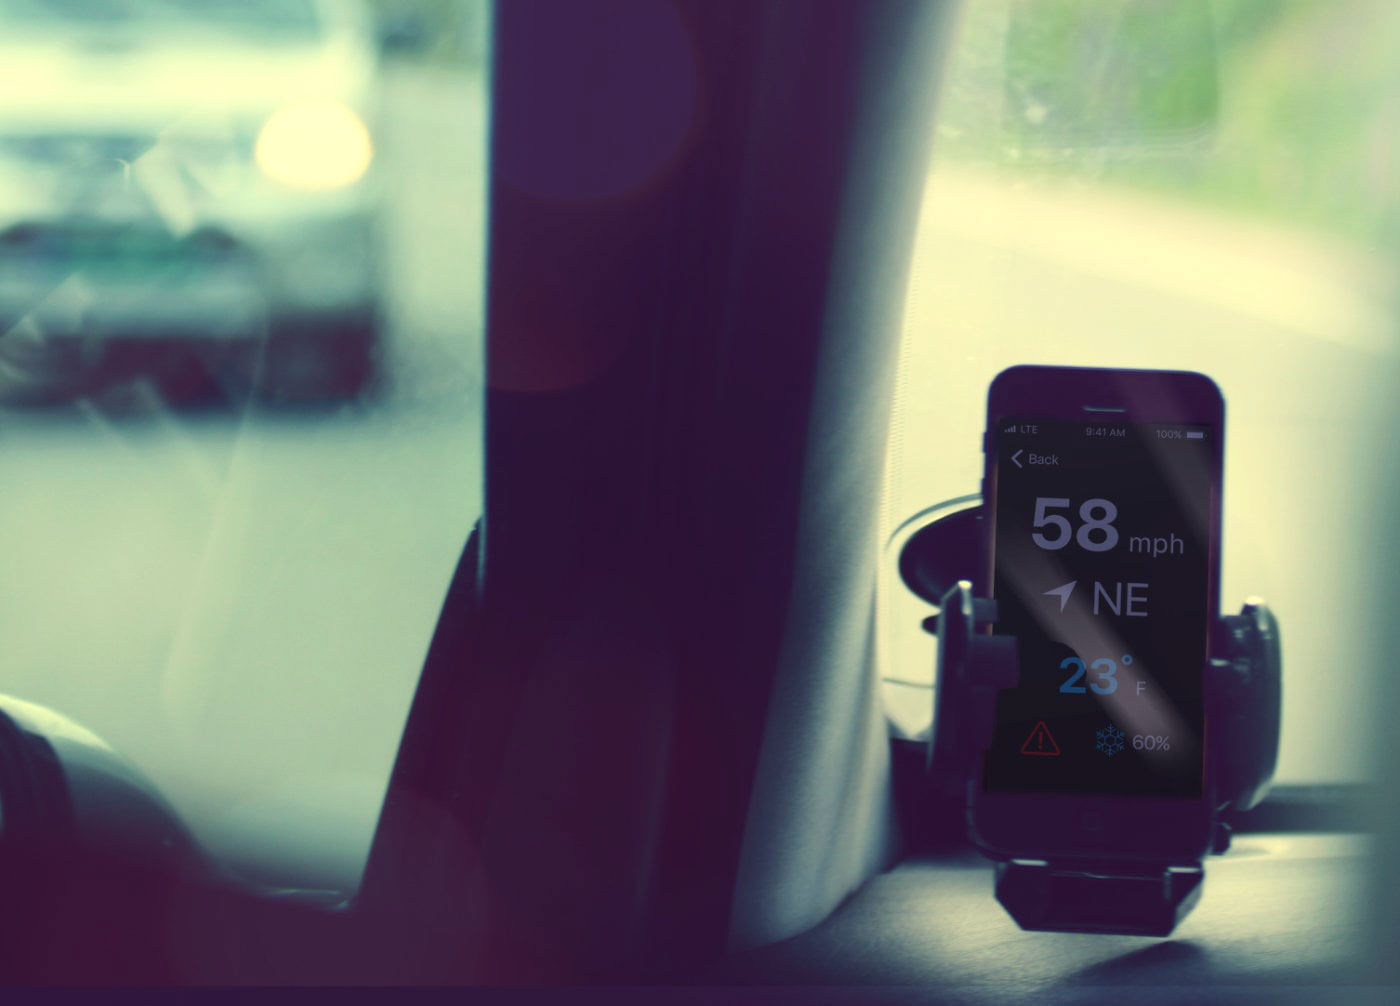 HUD heads up display iphone ios app drive Driving weather music car